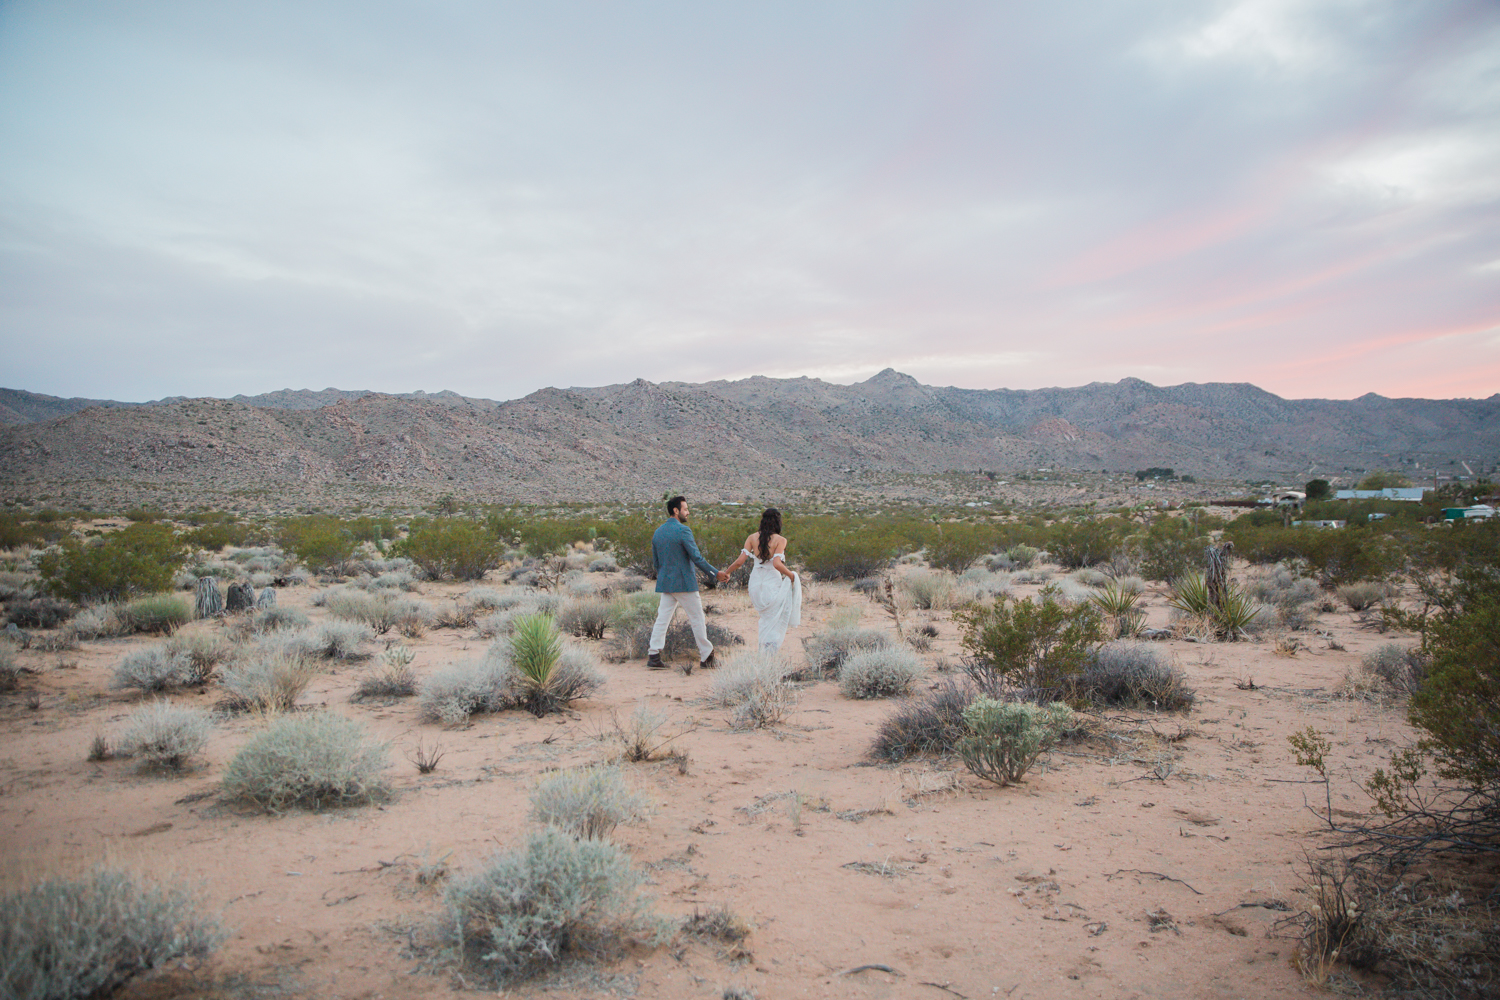 Juan-Pablo  + Carolyn  | Joshua Tree, California | Joshua Tree National Park